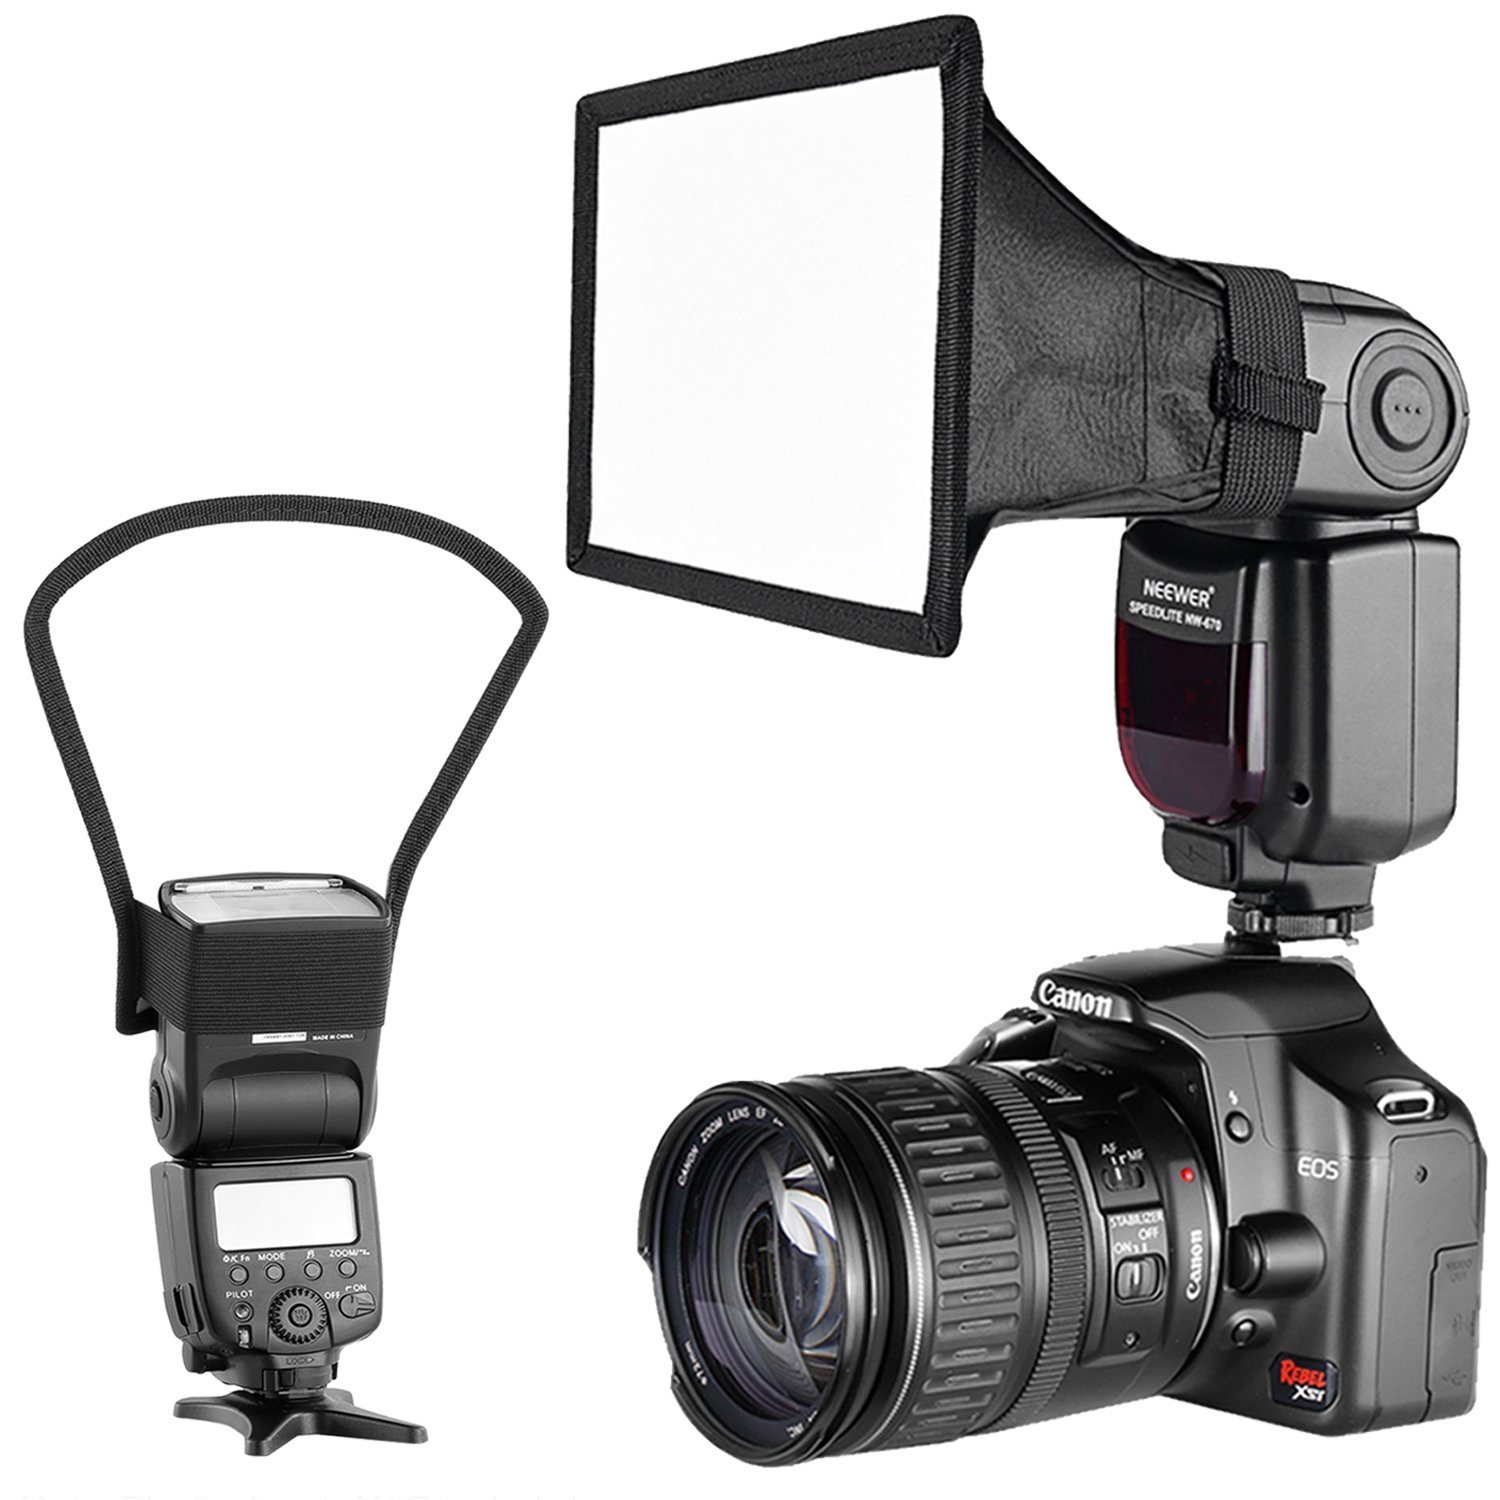 Neewer Camera Speedlite Flash Softbox and Reflector Diffuser Kit for Canon Nikon and Other DSLR Cameras Flashes, Neewer TT560 TT850 TT860 NW561 NW670 VK750II Flashes by Neewer